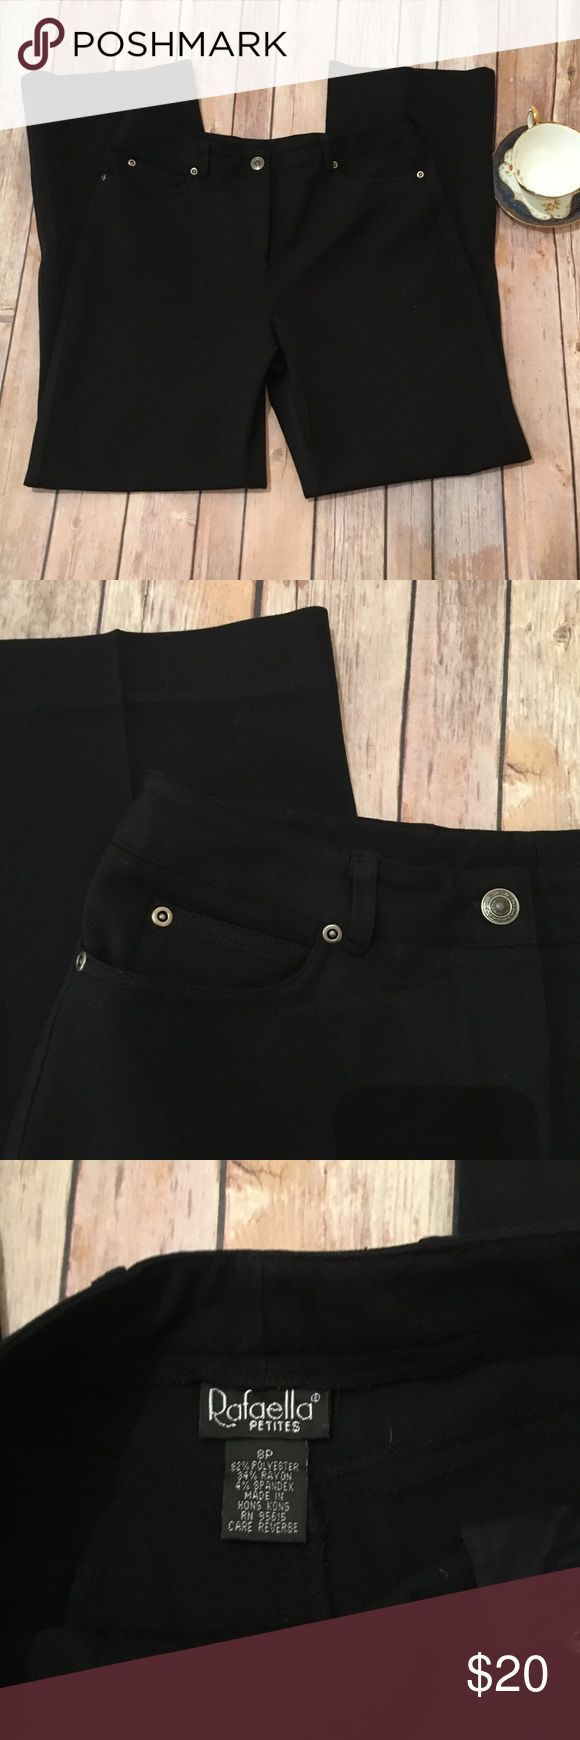 """Rafaella Petites Pants Black Rafaella Petites pants. Size 8P. Would look great with a number of tops. Very versatile. Can be dressed up for the office or dressed down for a casual weekend. Very flattering and slimming. 62% polyester  34% Rayon 4% spandex   Waist: 15"""" Hip: 18"""" Rise: 10"""" Inseam: 29"""" Total length: 37.5"""" Leg opening: 9"""" not flared  BN2 P301 Rafaella Pants Straight Leg"""